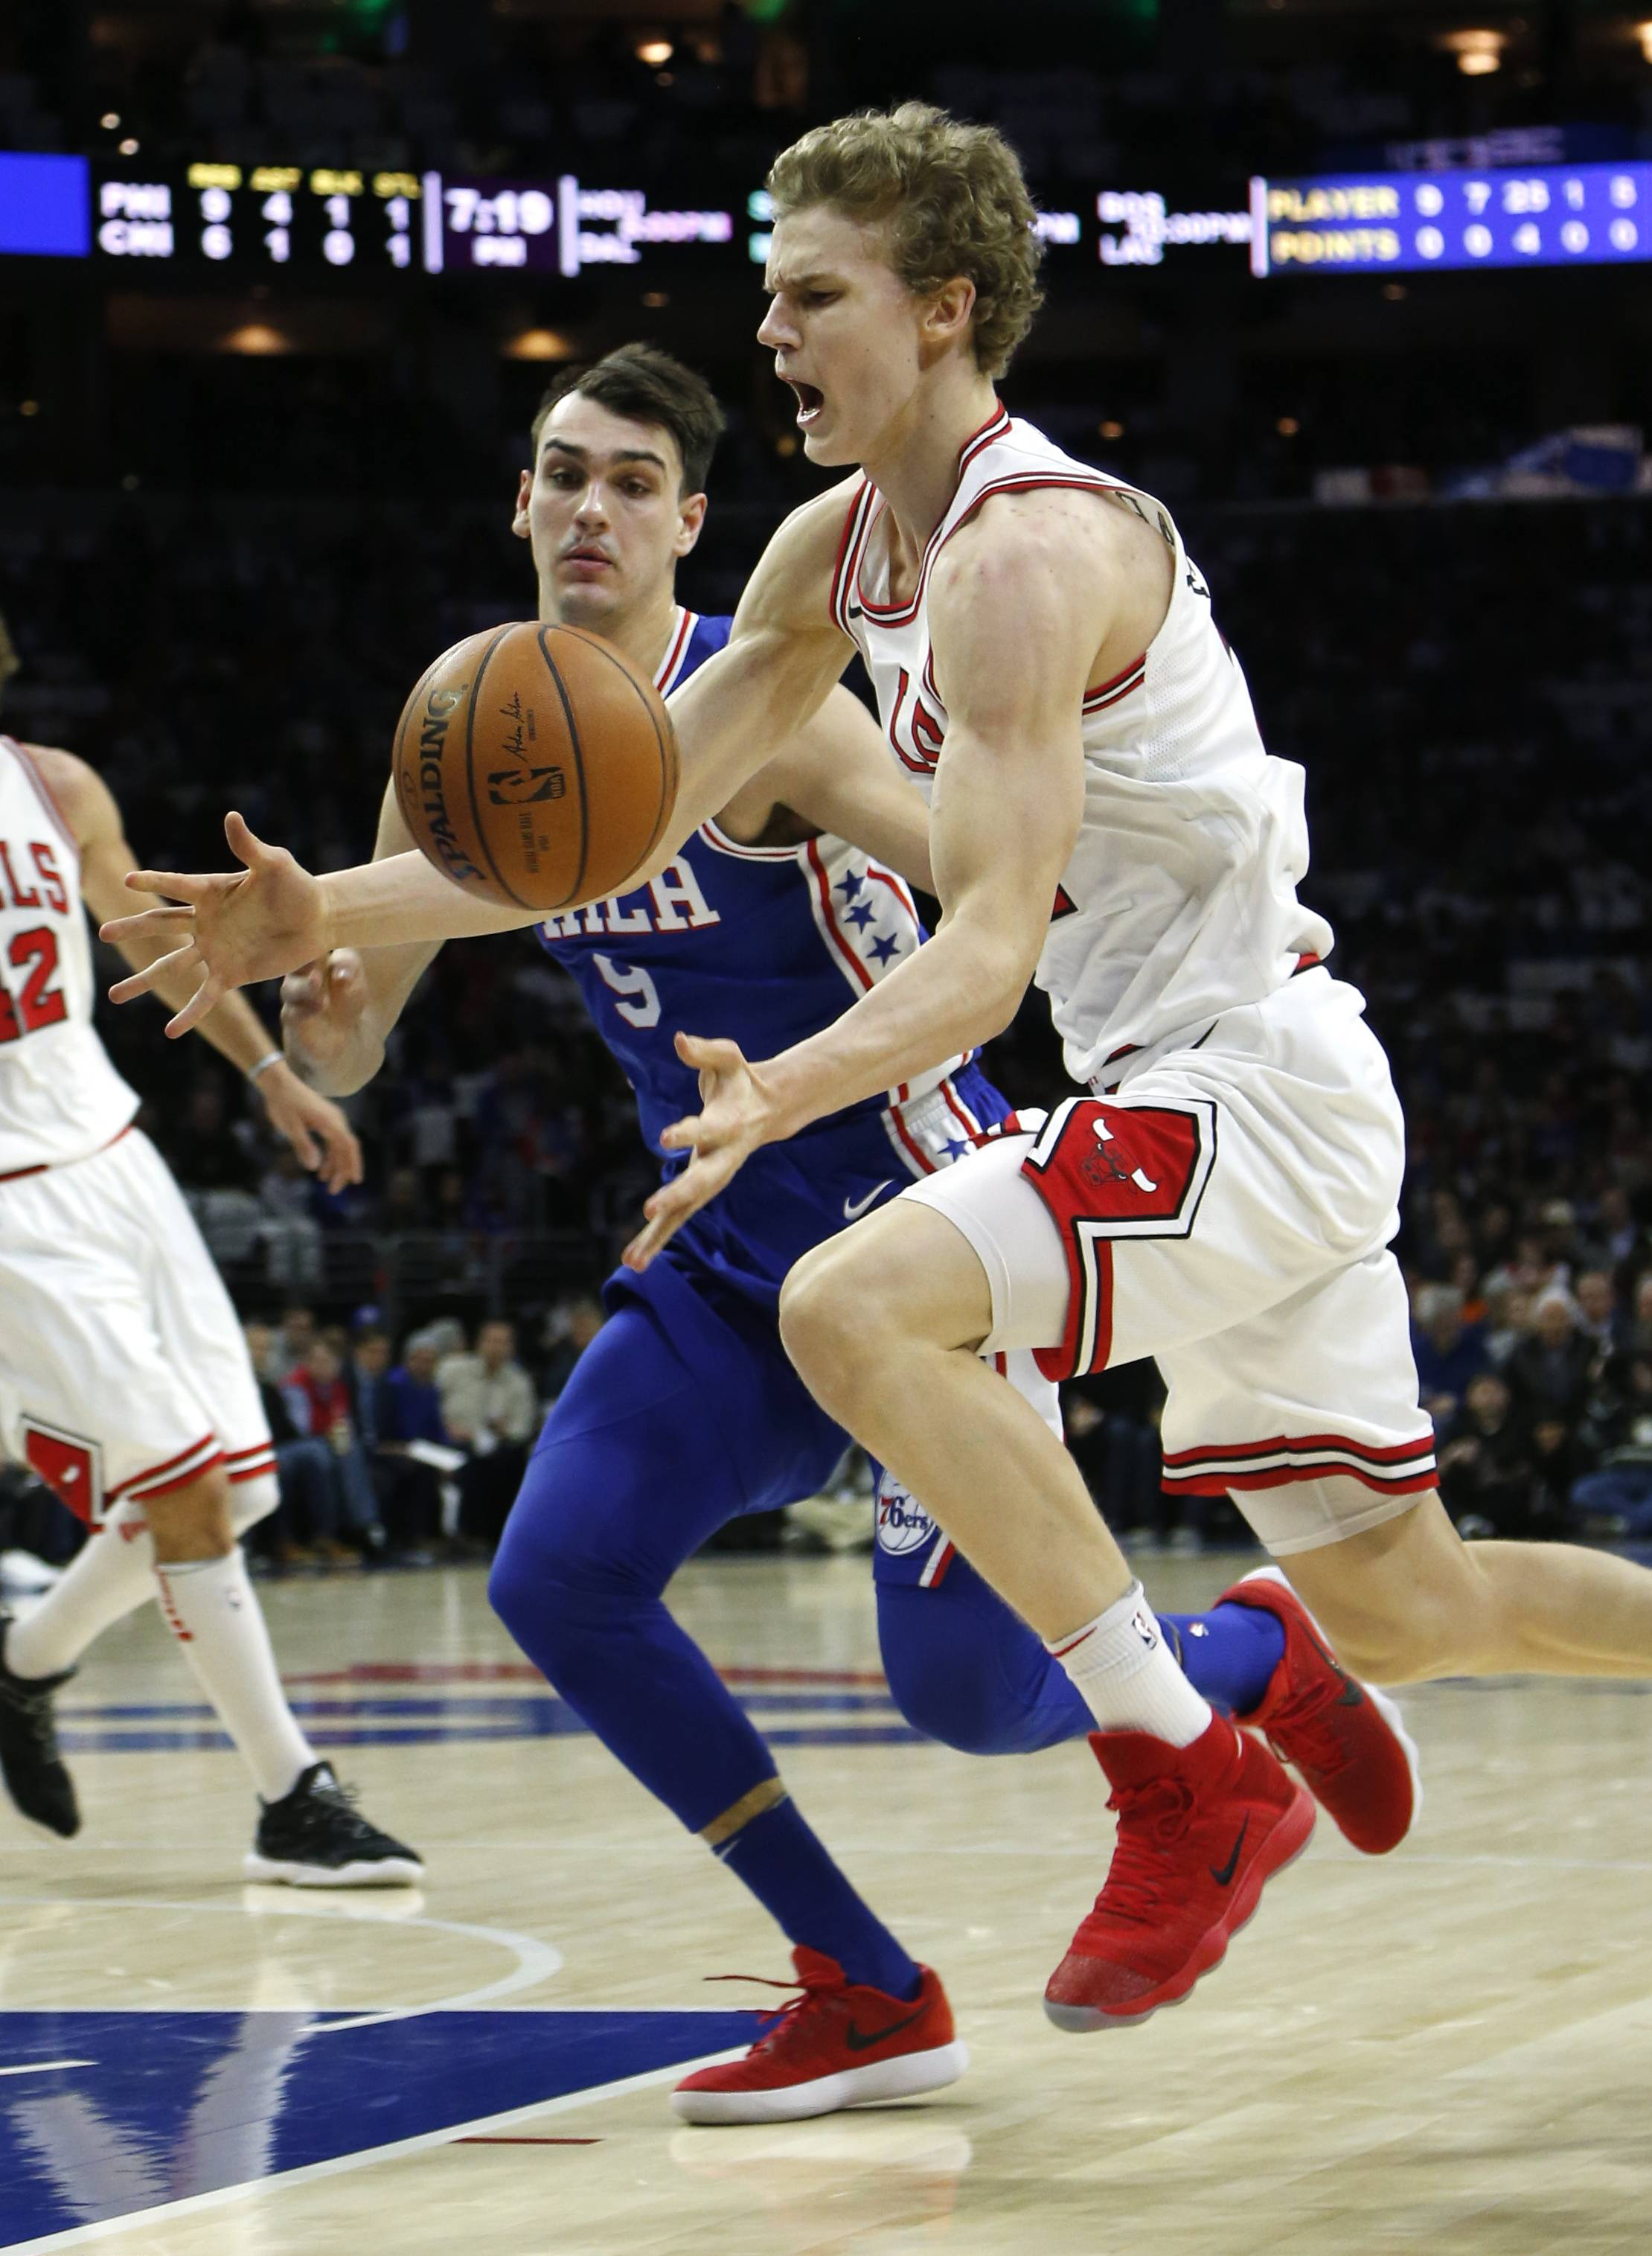 Chicago Bulls forward Lauri Markkanen, right, is fouled by Philadelphia 76ers forward Dario Saric (9) during the first half on an NBA basketball game Wednesday, Jan. 24, 2018, in Philadelphia. Markkanen offensive production has dropped from 19.3 points per game to 14.6 with starting point guard Kris Dunn sidelined with a concussion.